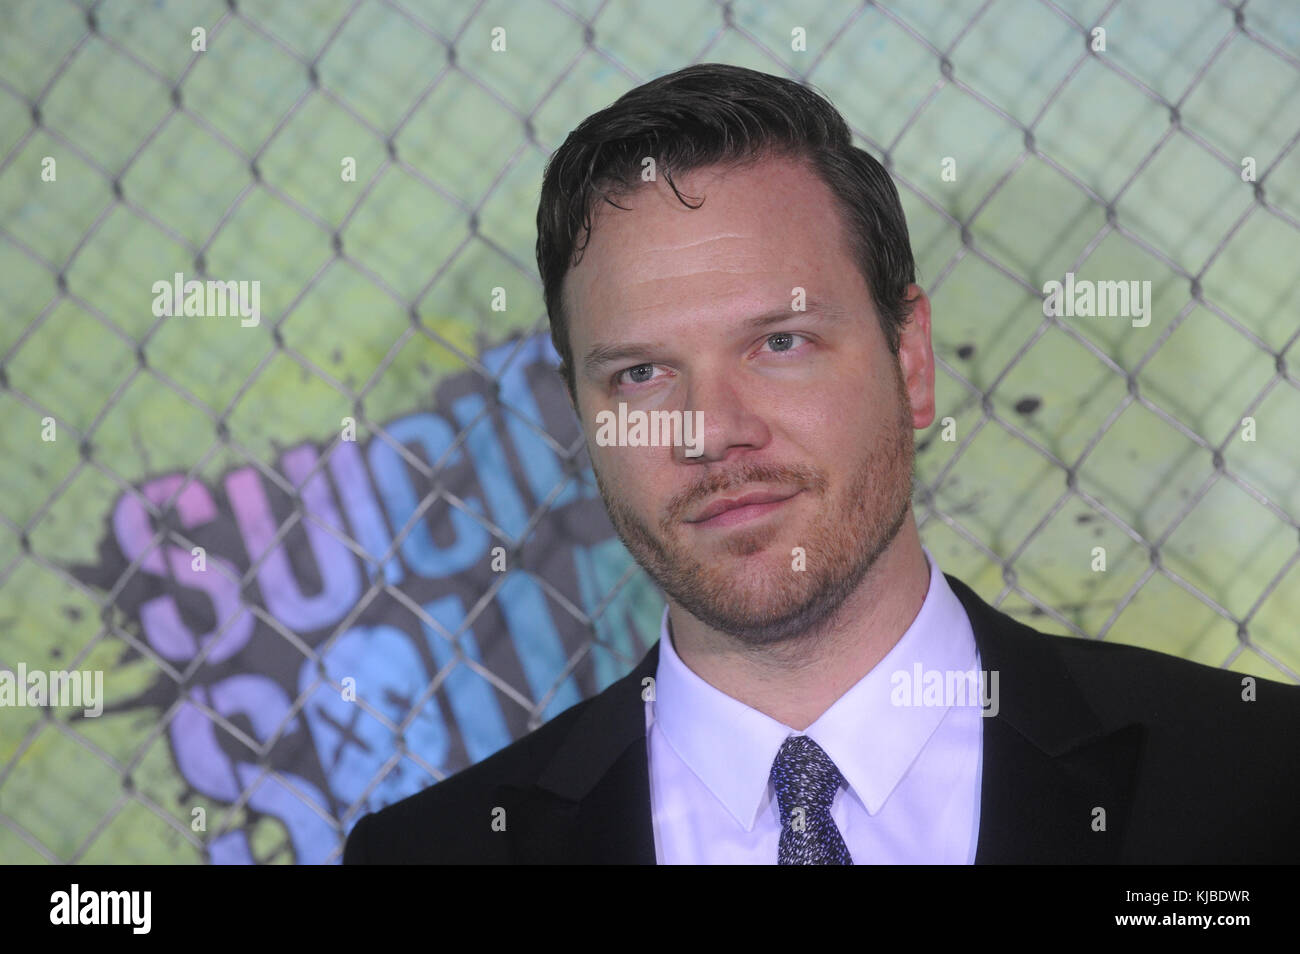 NEW YORK, NY - AUGUST 01:   attends the 'Suicide Squad' world premiere at The Beacon Theatre on August 1, - Stock Image